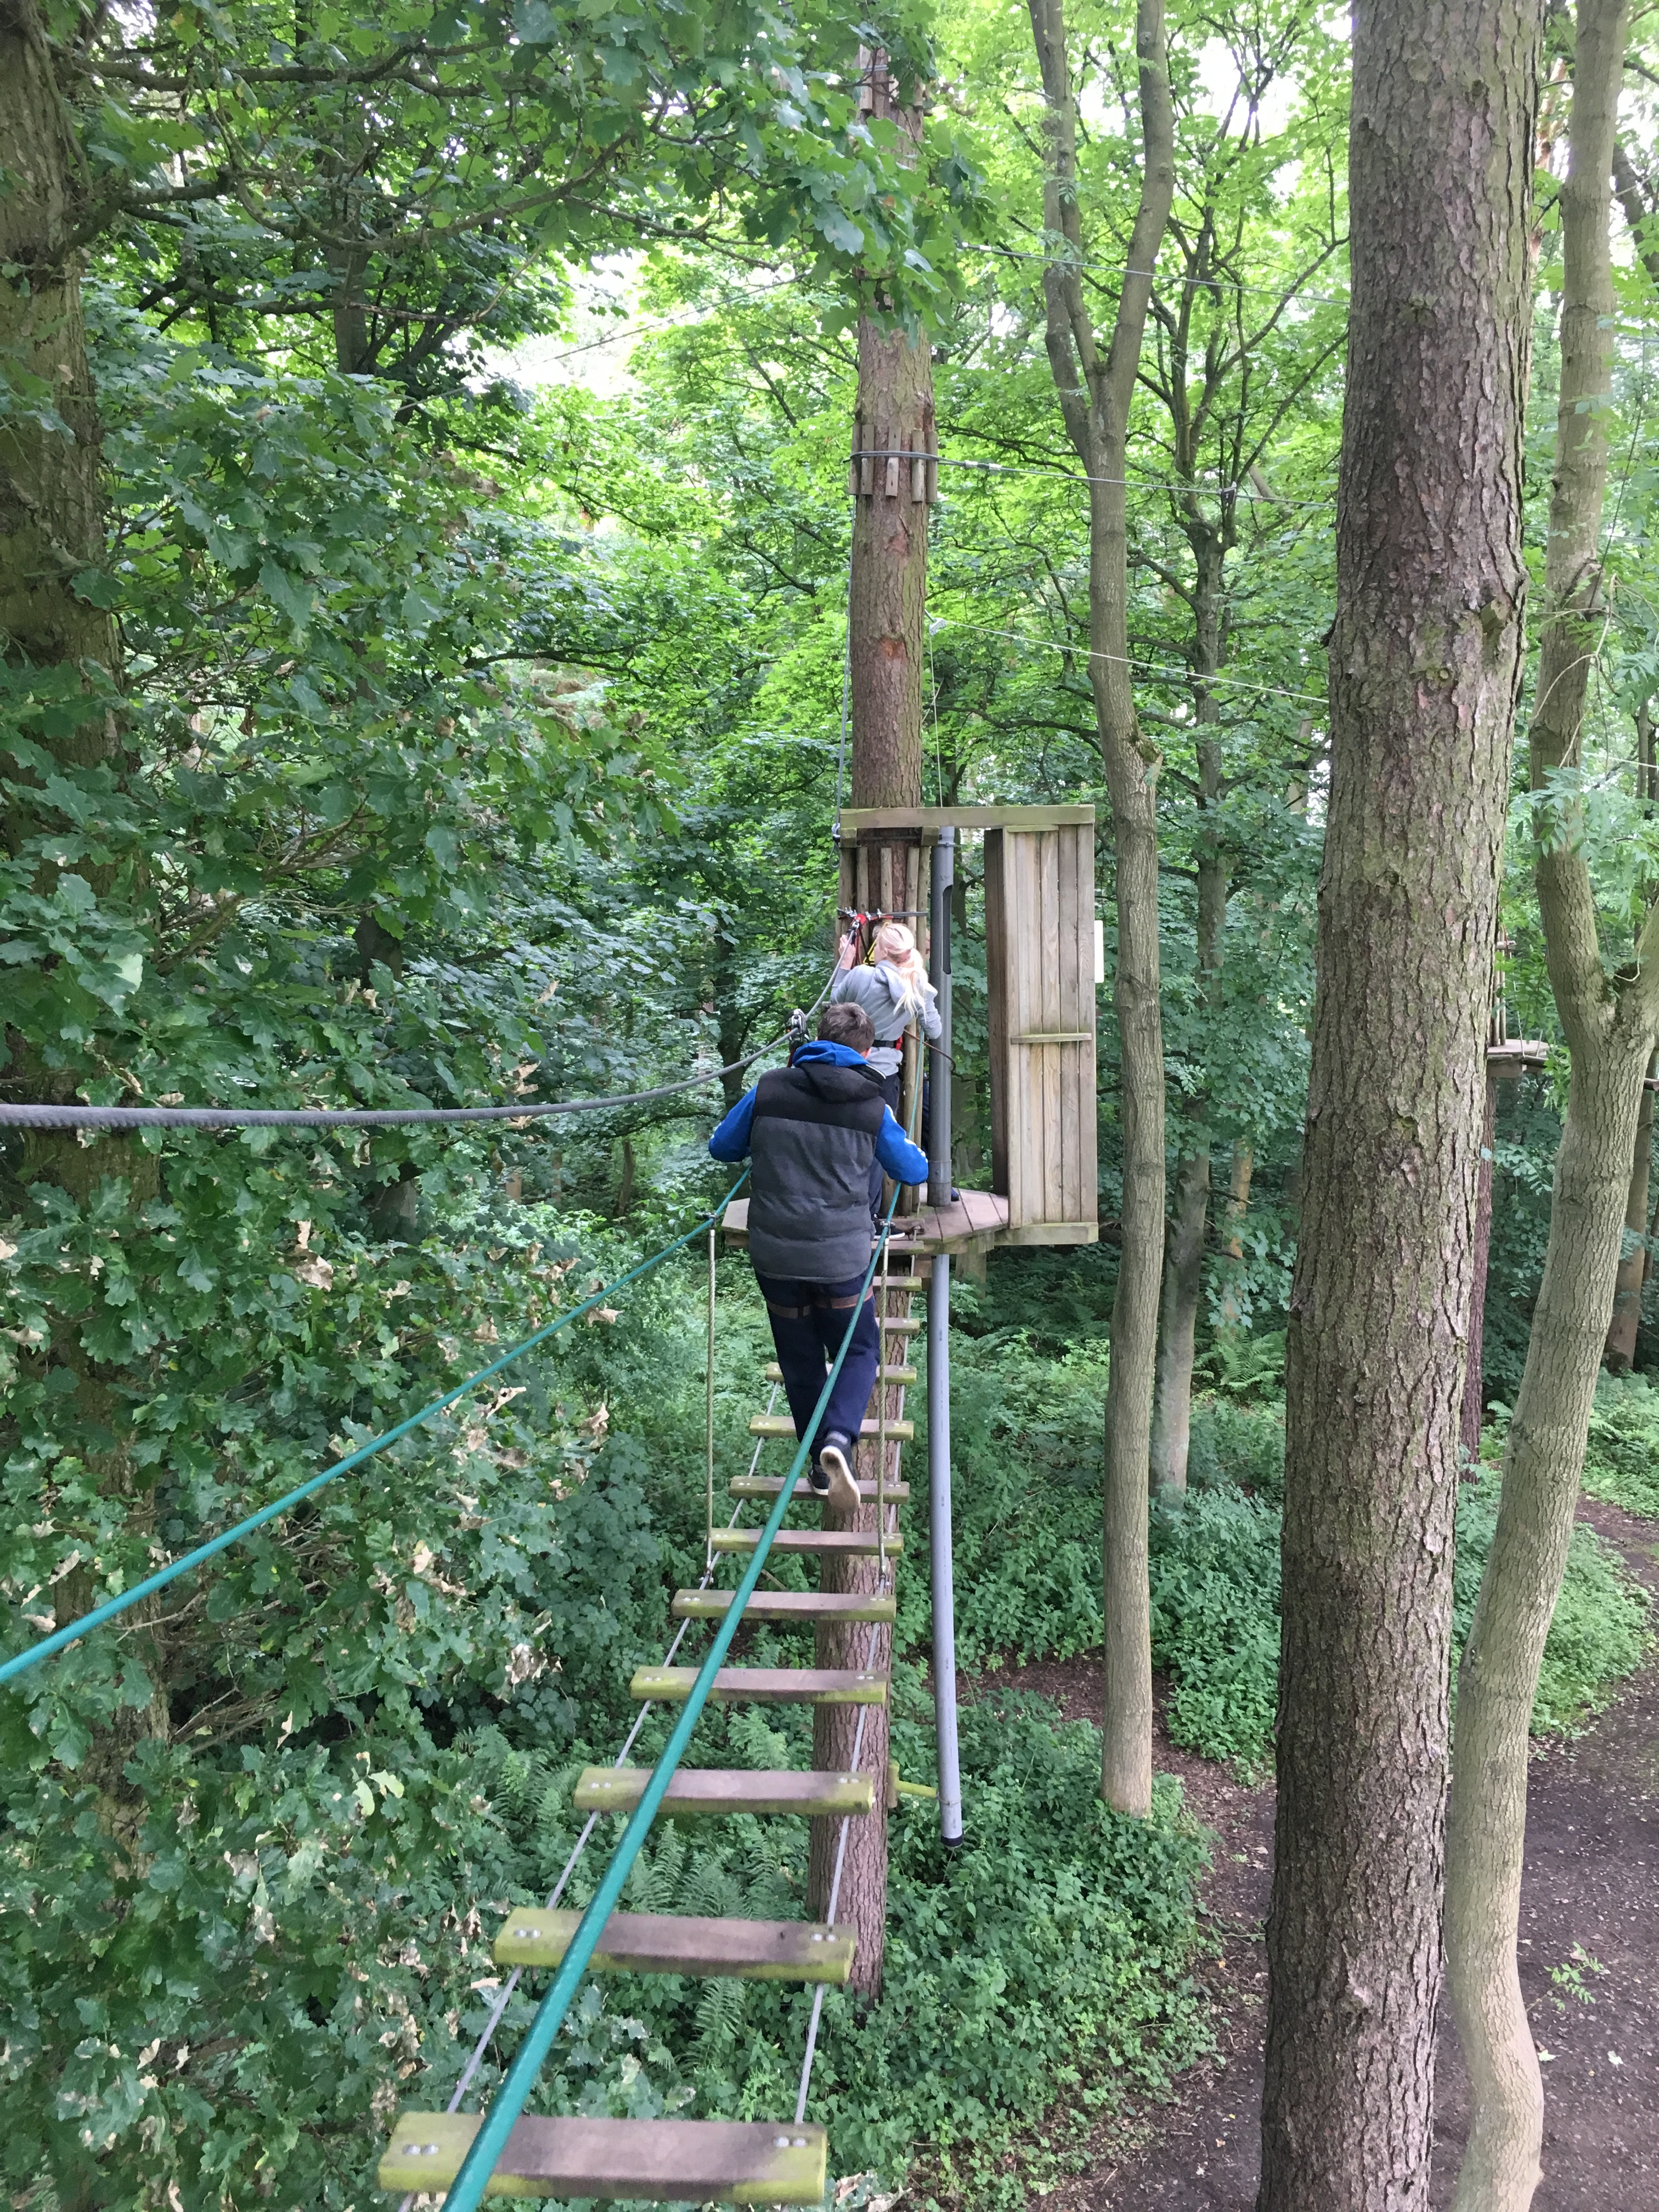 Go To Www Bing Comhella: North Yorkshire Young People Go Ape!